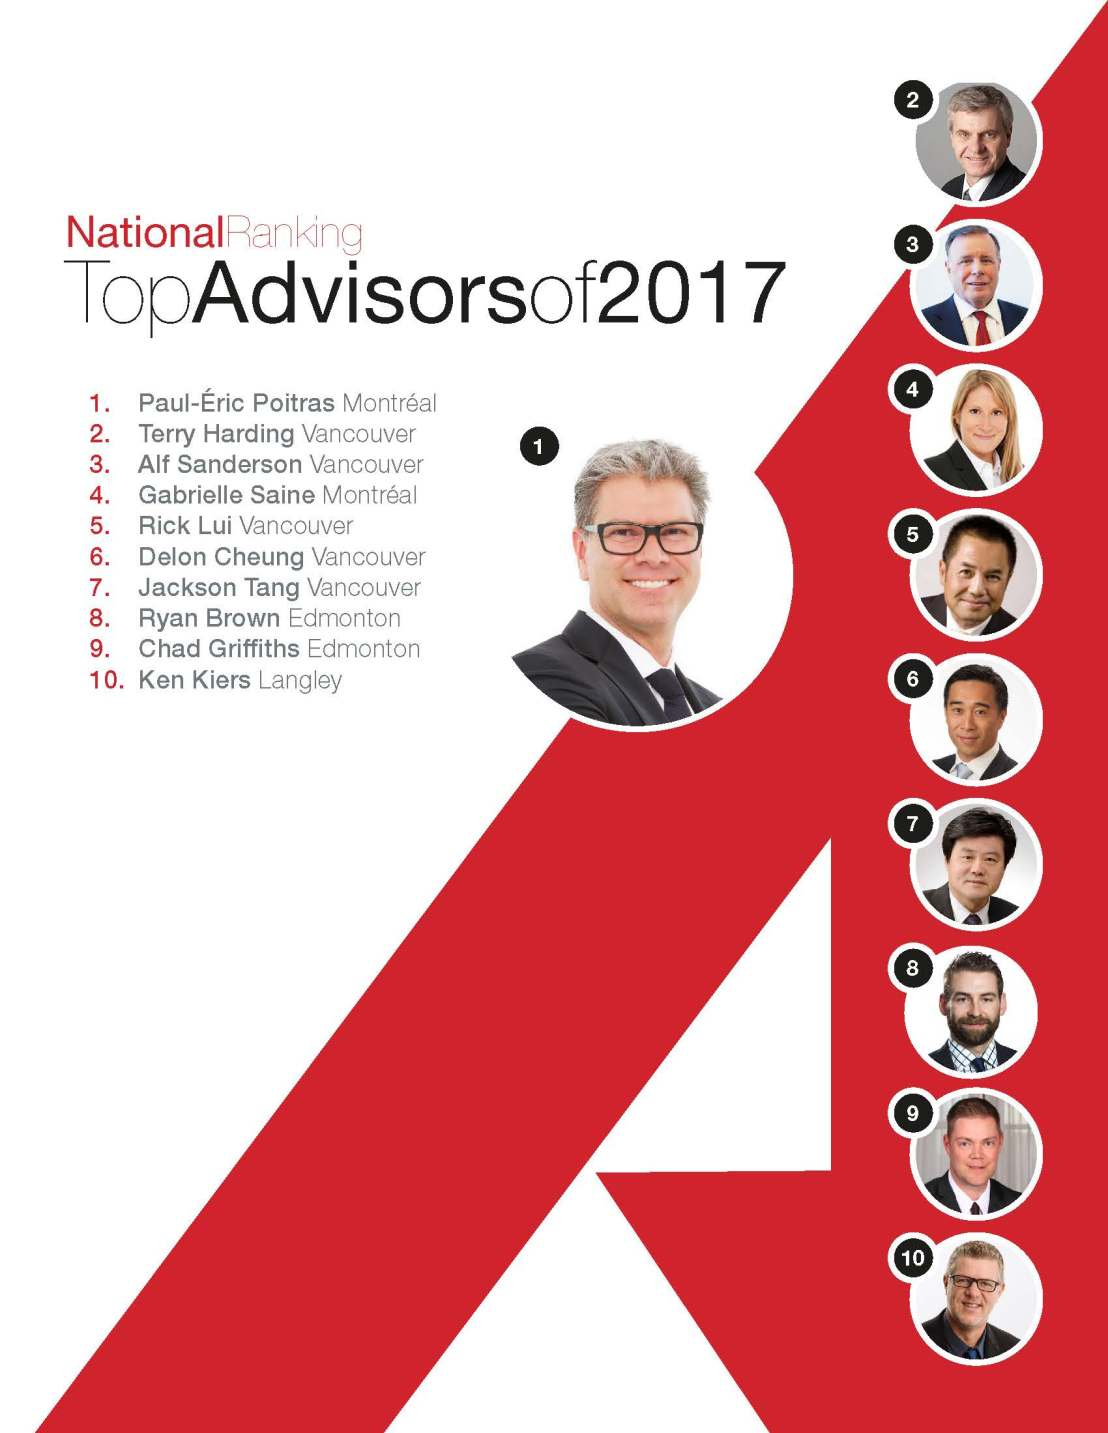 National-TopAdvisors-Dec2017